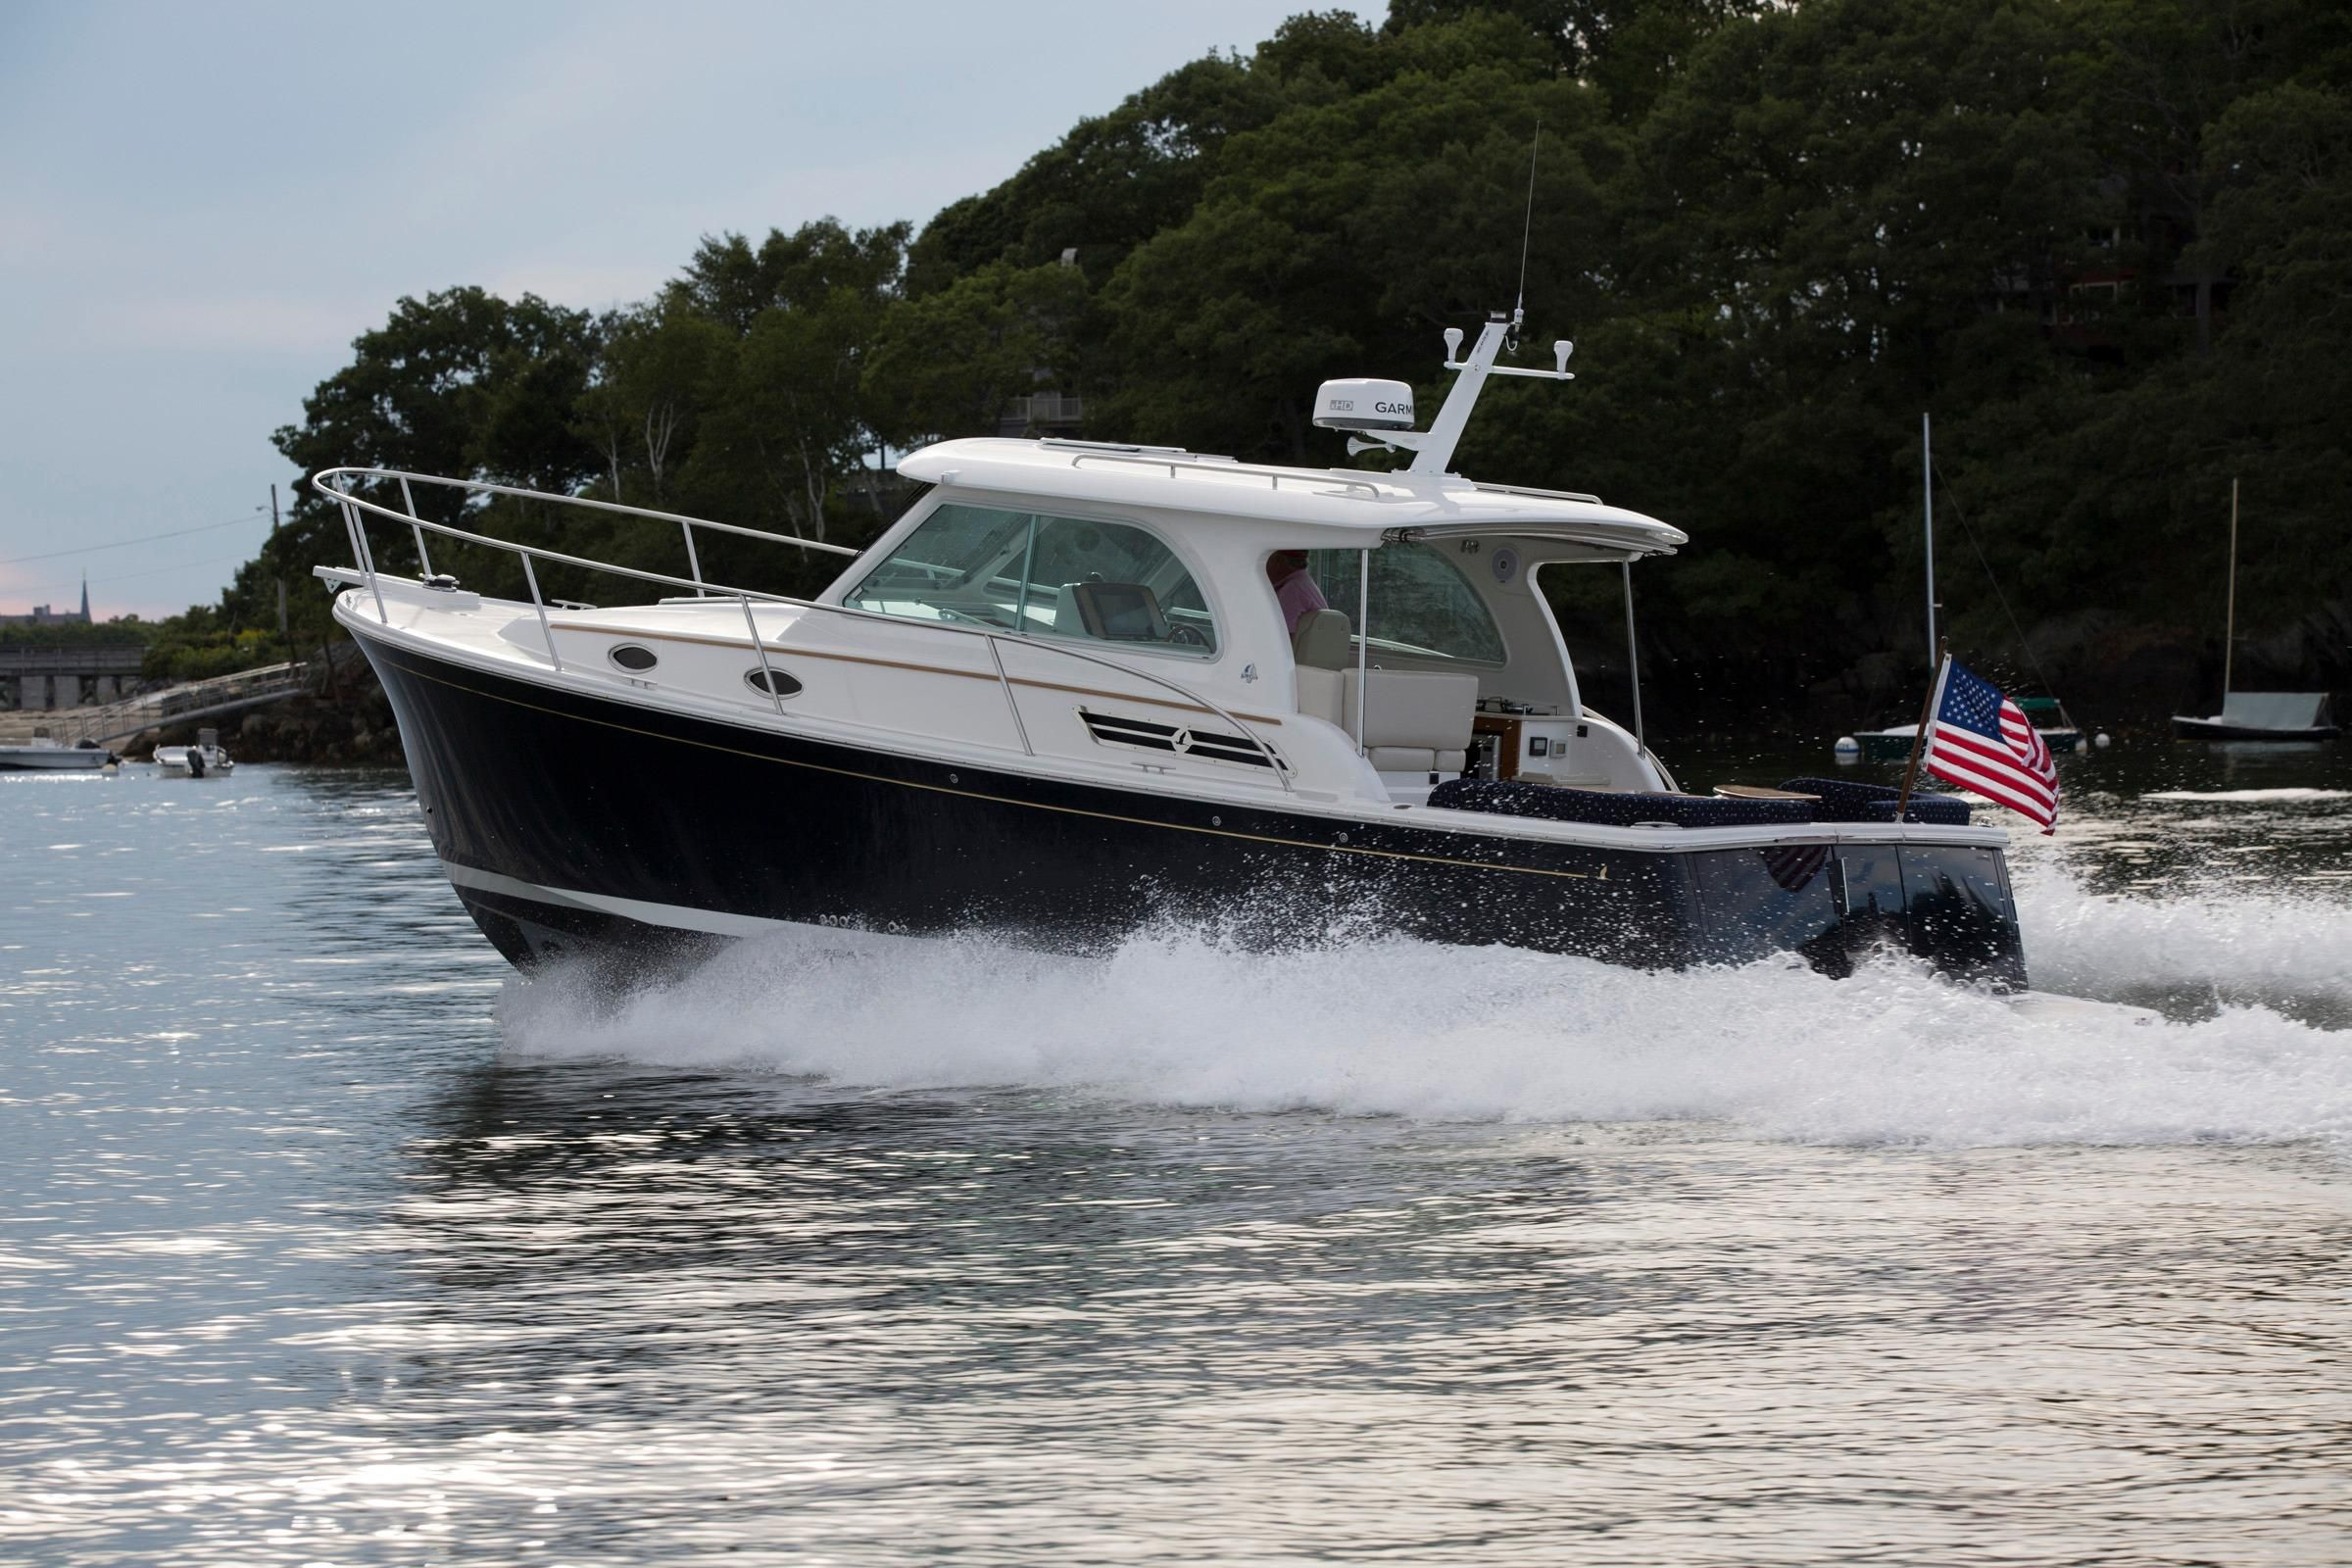 2018 back cove 32 power boat for sale for Fishing boat dealers near me